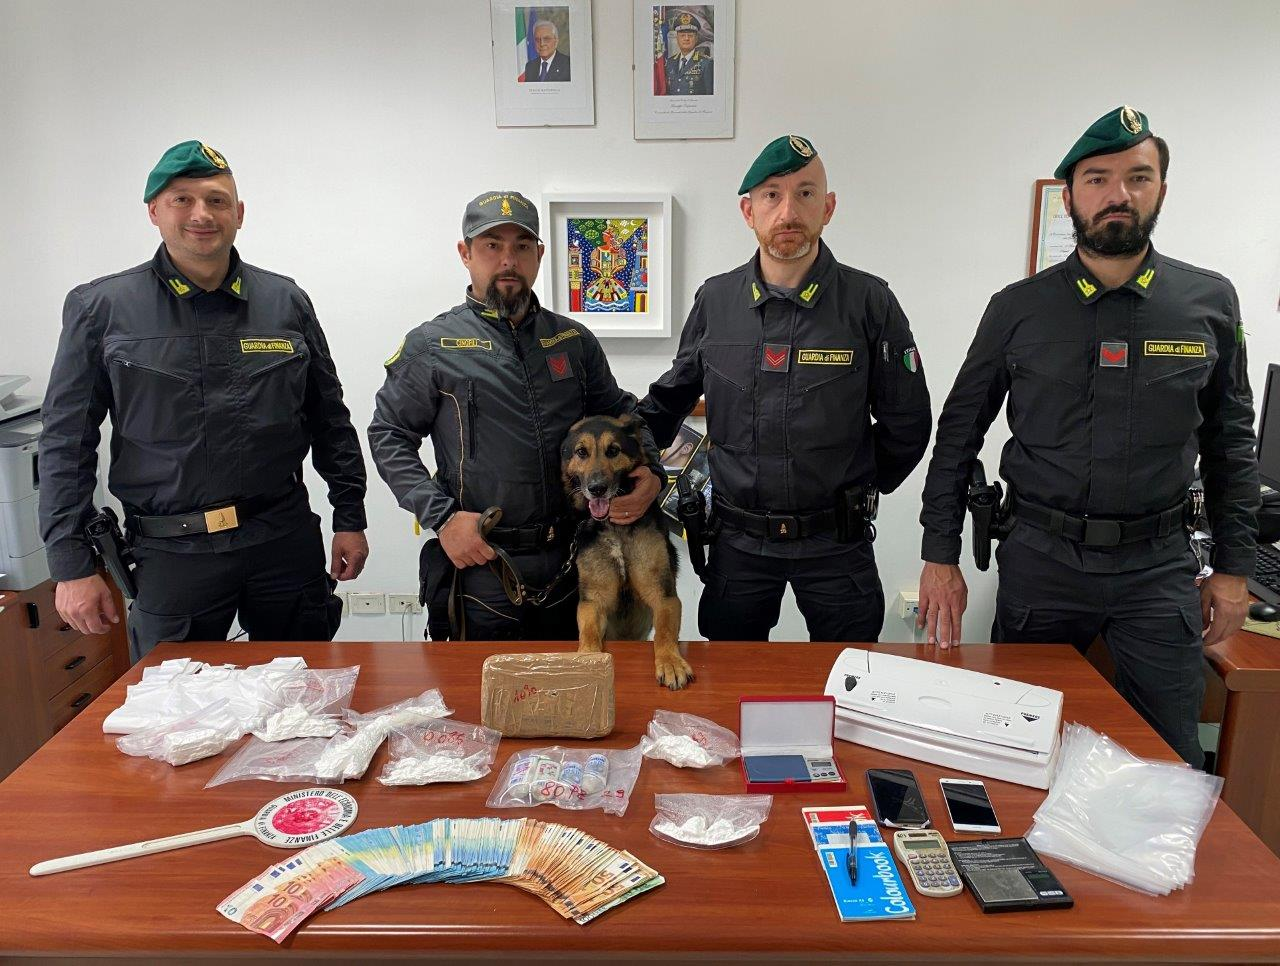 spaccio-cocaina-bar-pietramelara-sequestro